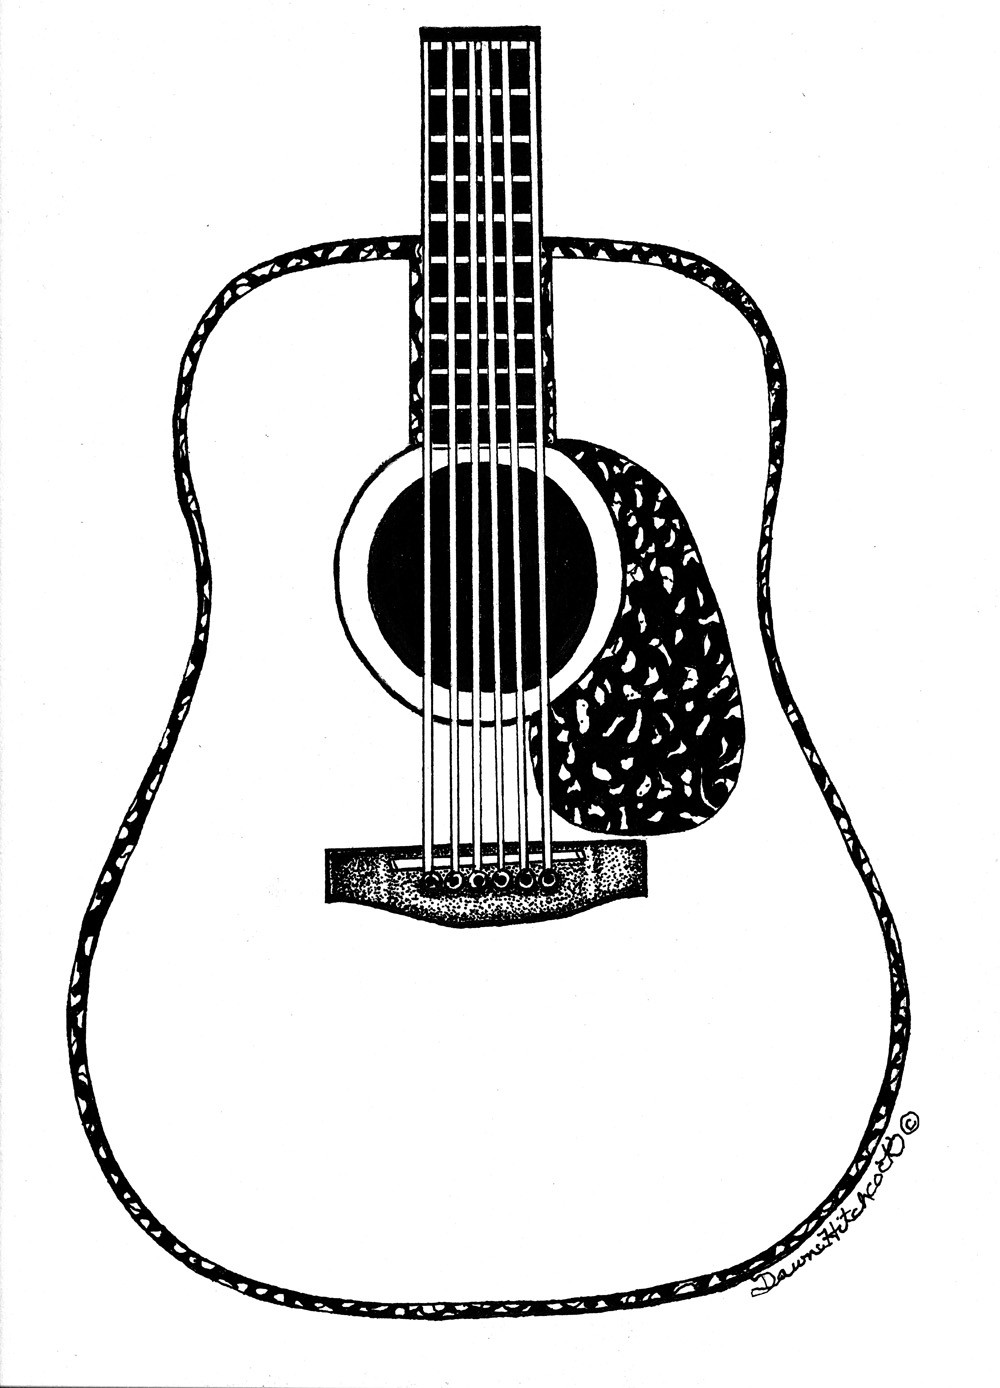 Drawn musician line drawing Drawing ClipArt Best Images Guitar